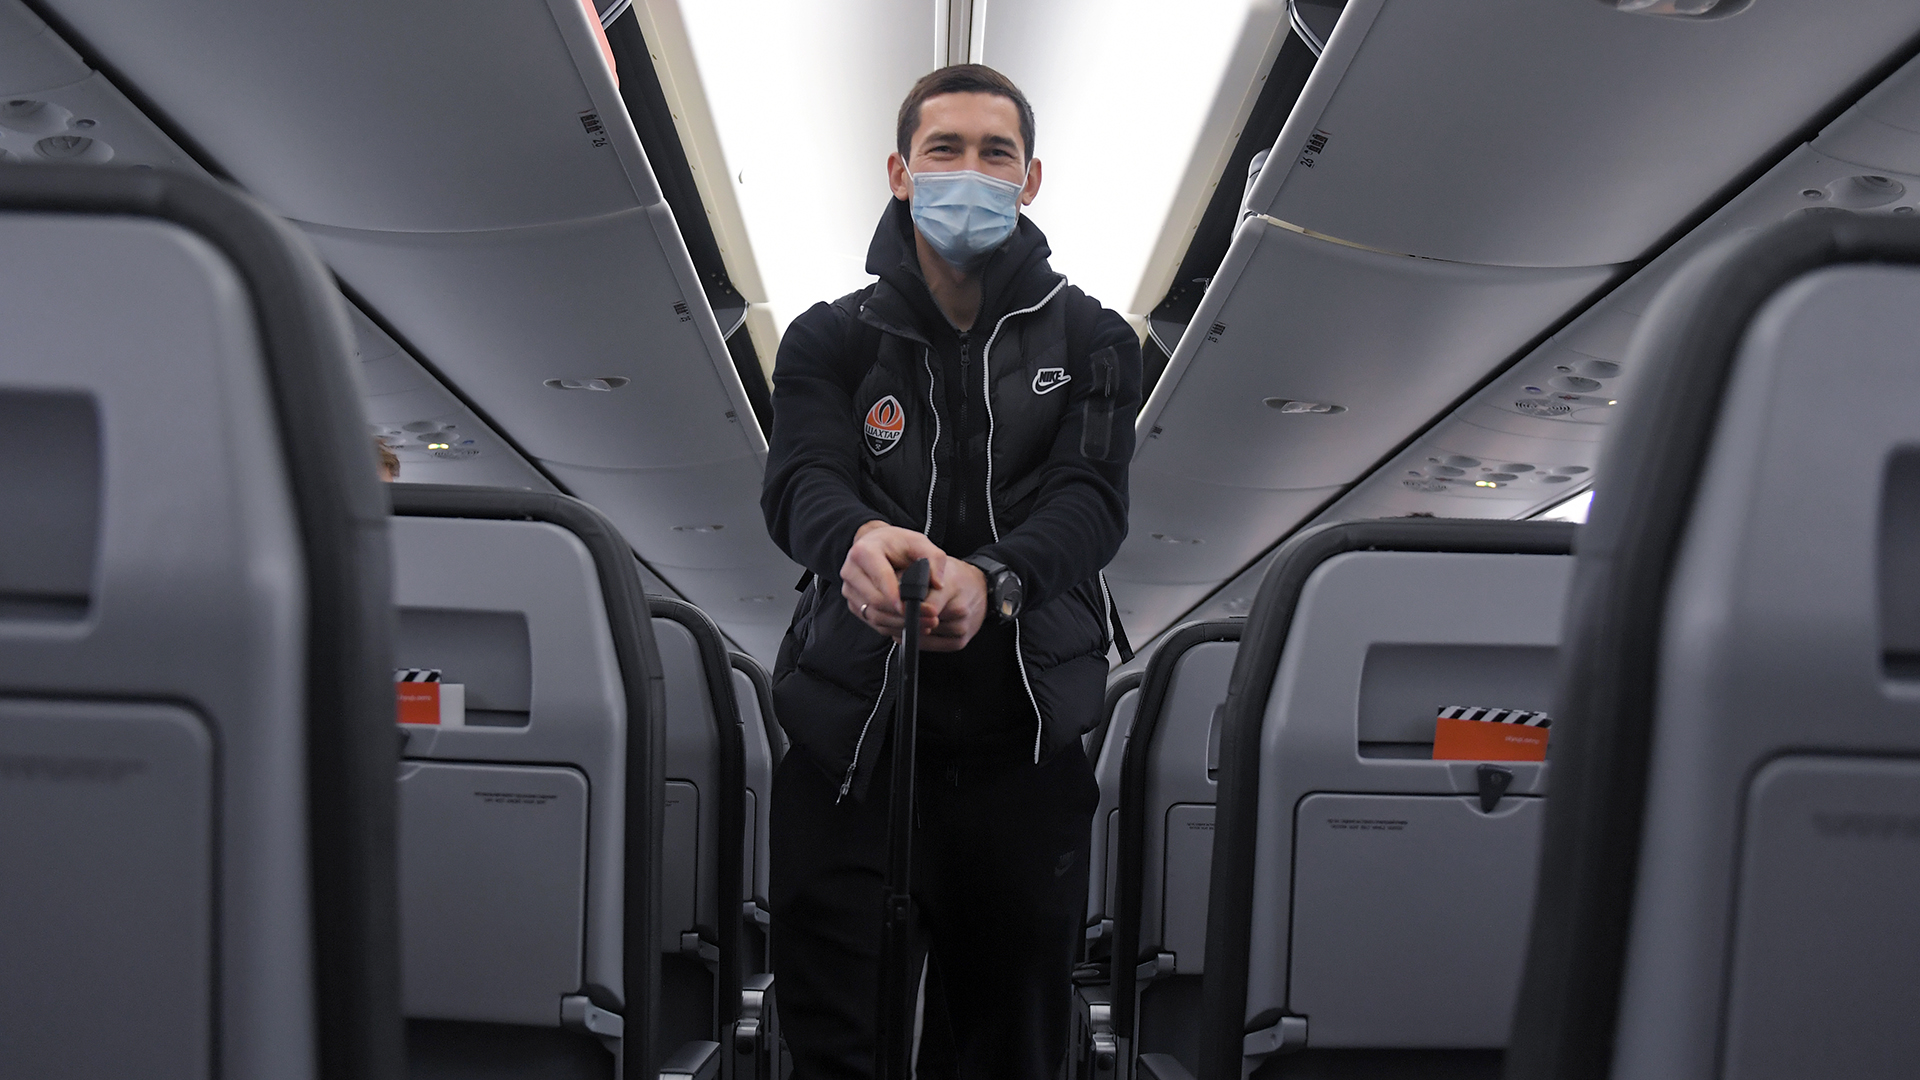 https://shakhtar.com/-/media/fcsd/news/2020/november/24_news/24_flight/gal/dsc_5743.jpg?1606253706719